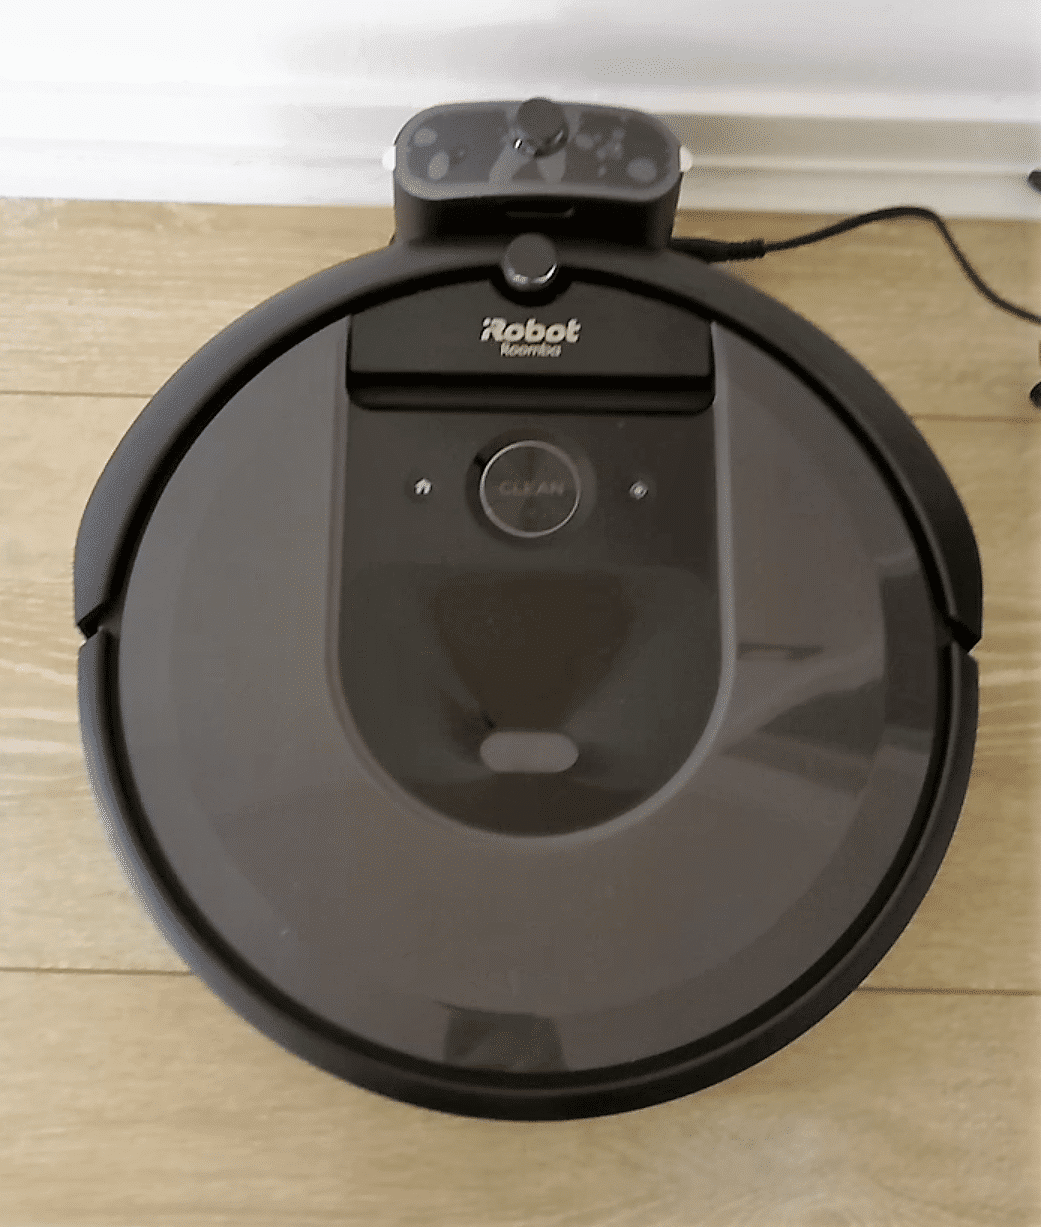 IRobot Roomba I7 test